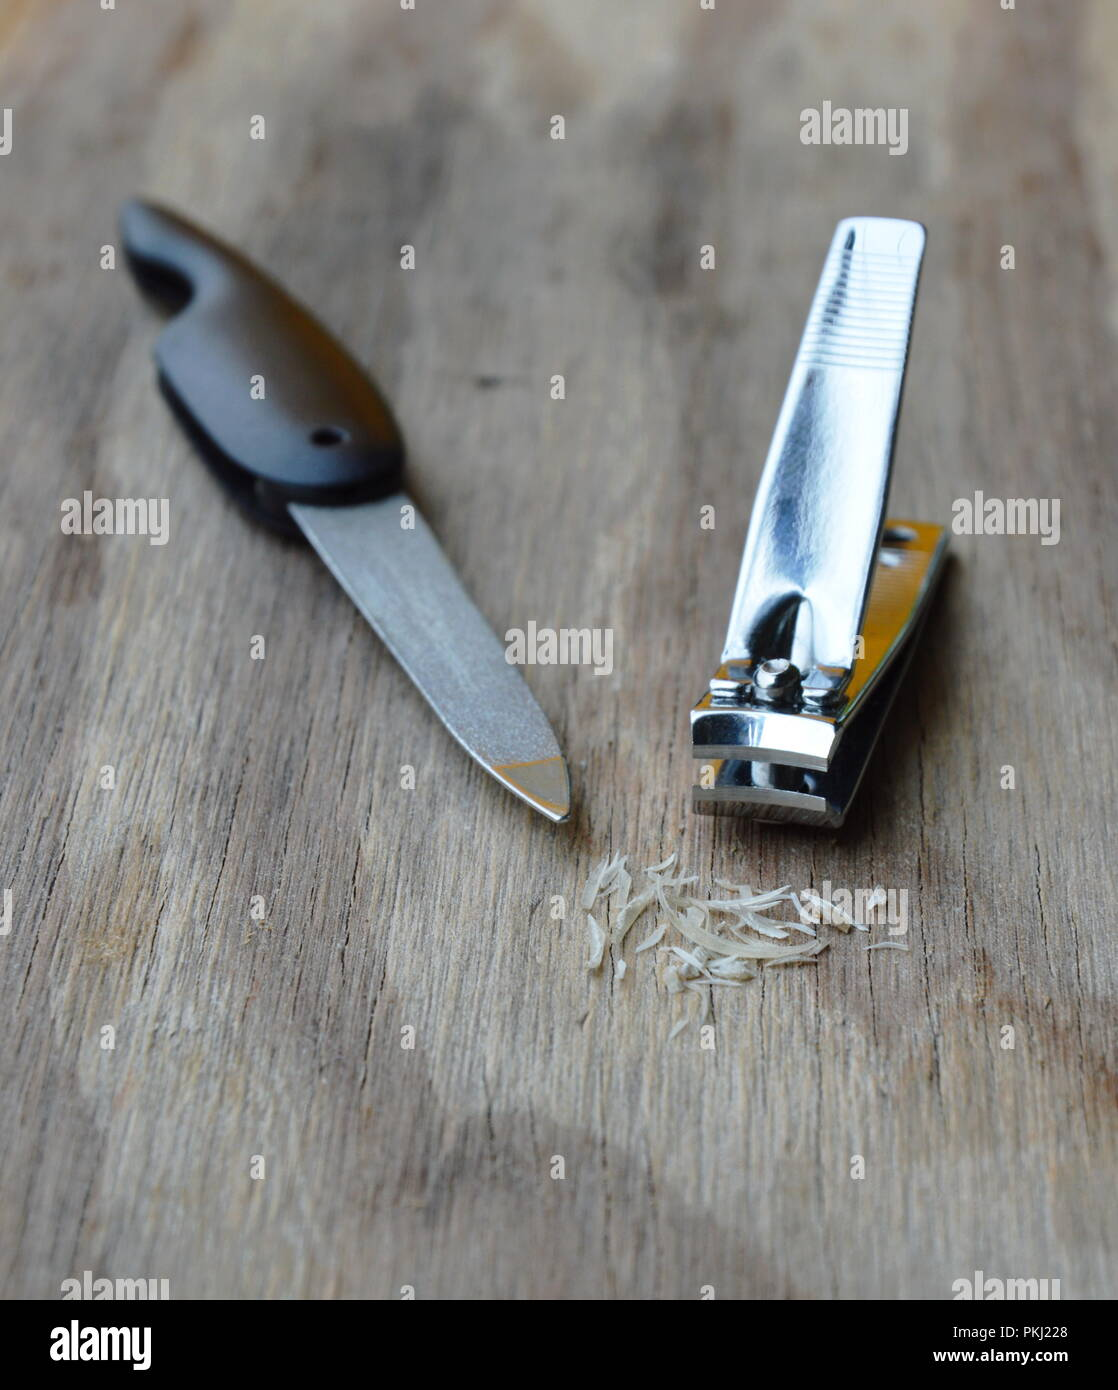 nail clipper and emery file on plank - Stock Image